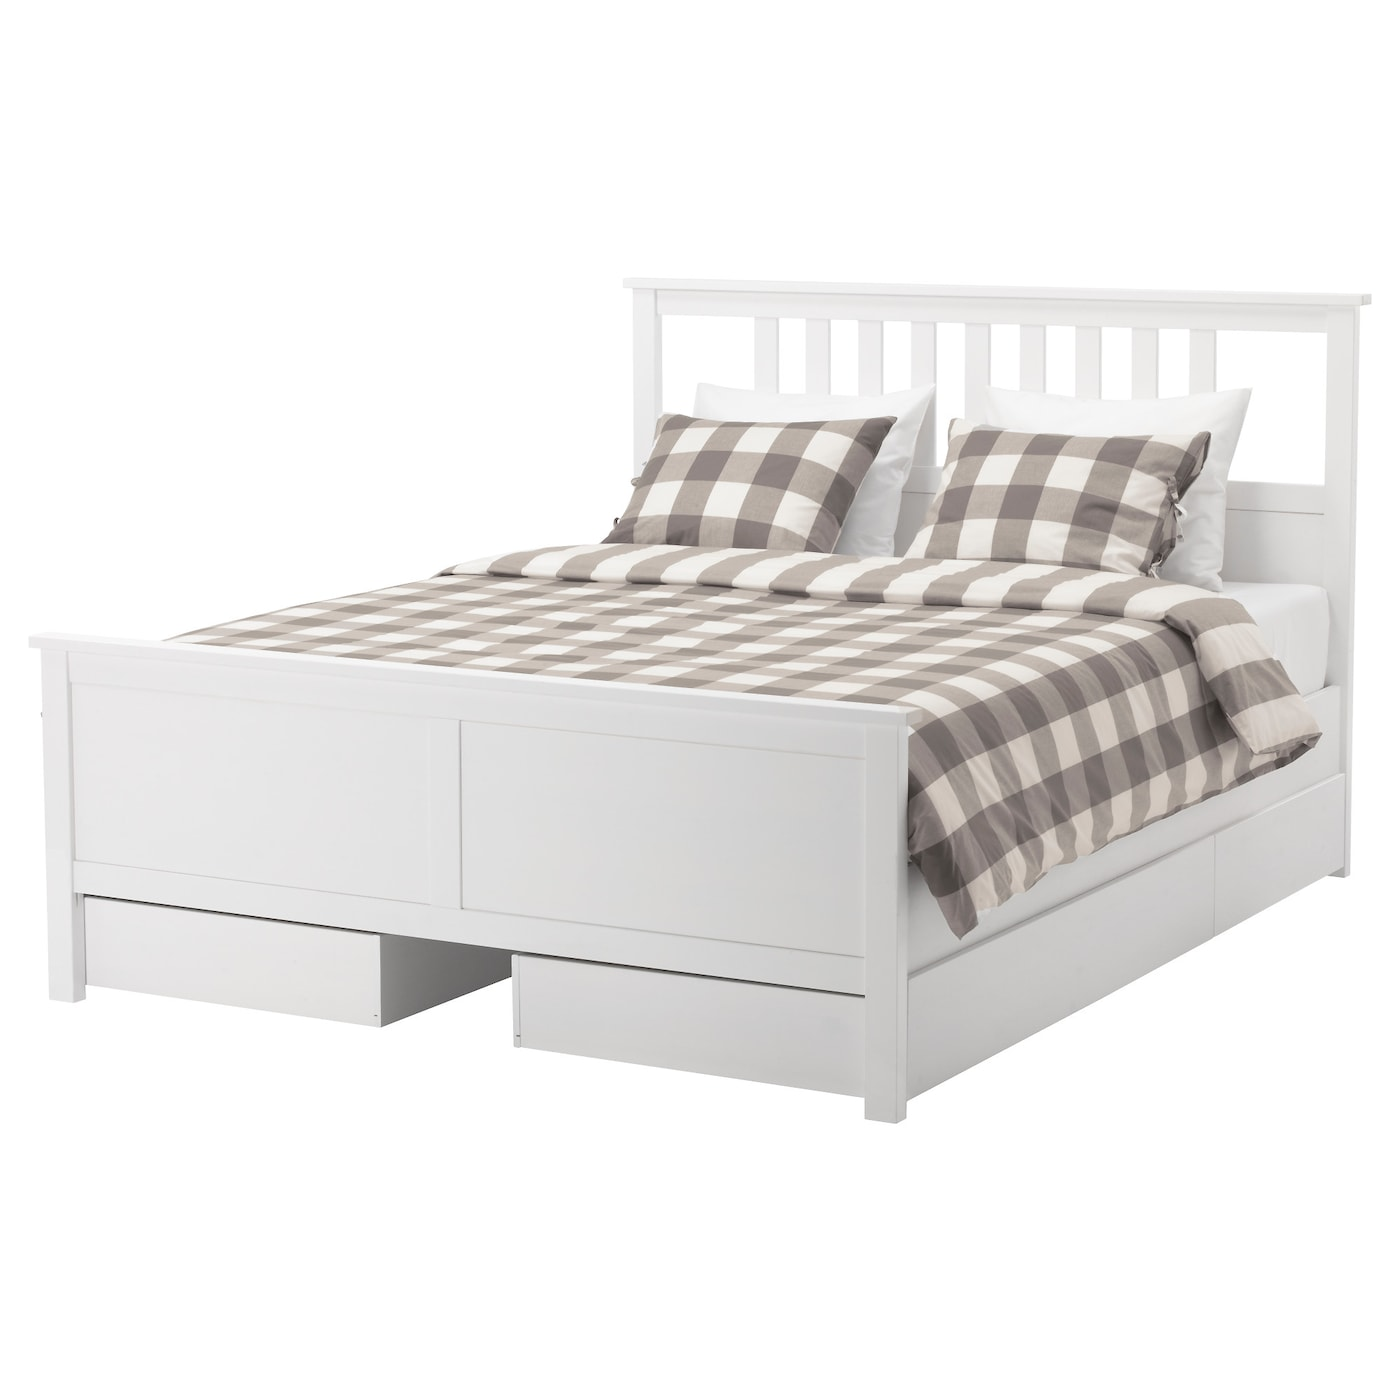 Hemnes Bed Frame With 4 Storage Boxes White Stain Lur Y